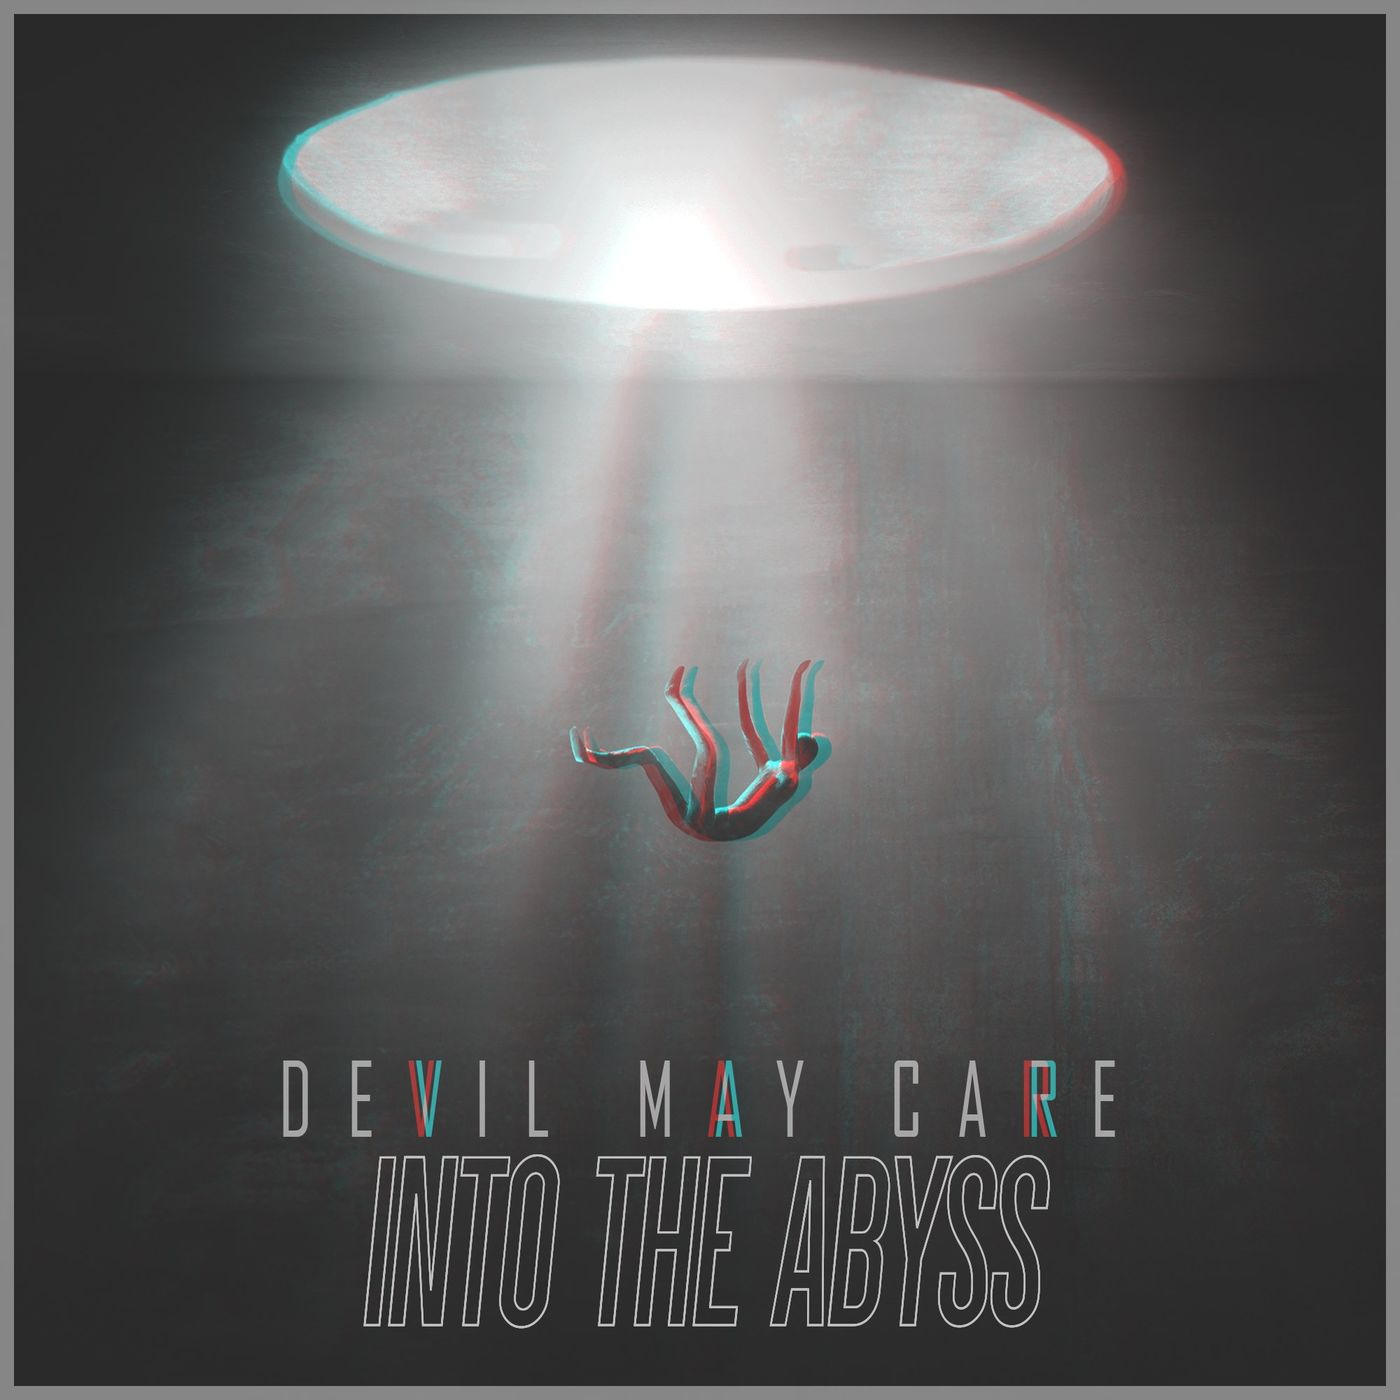 Devil May Care - Into The Abyss [single] (2021)